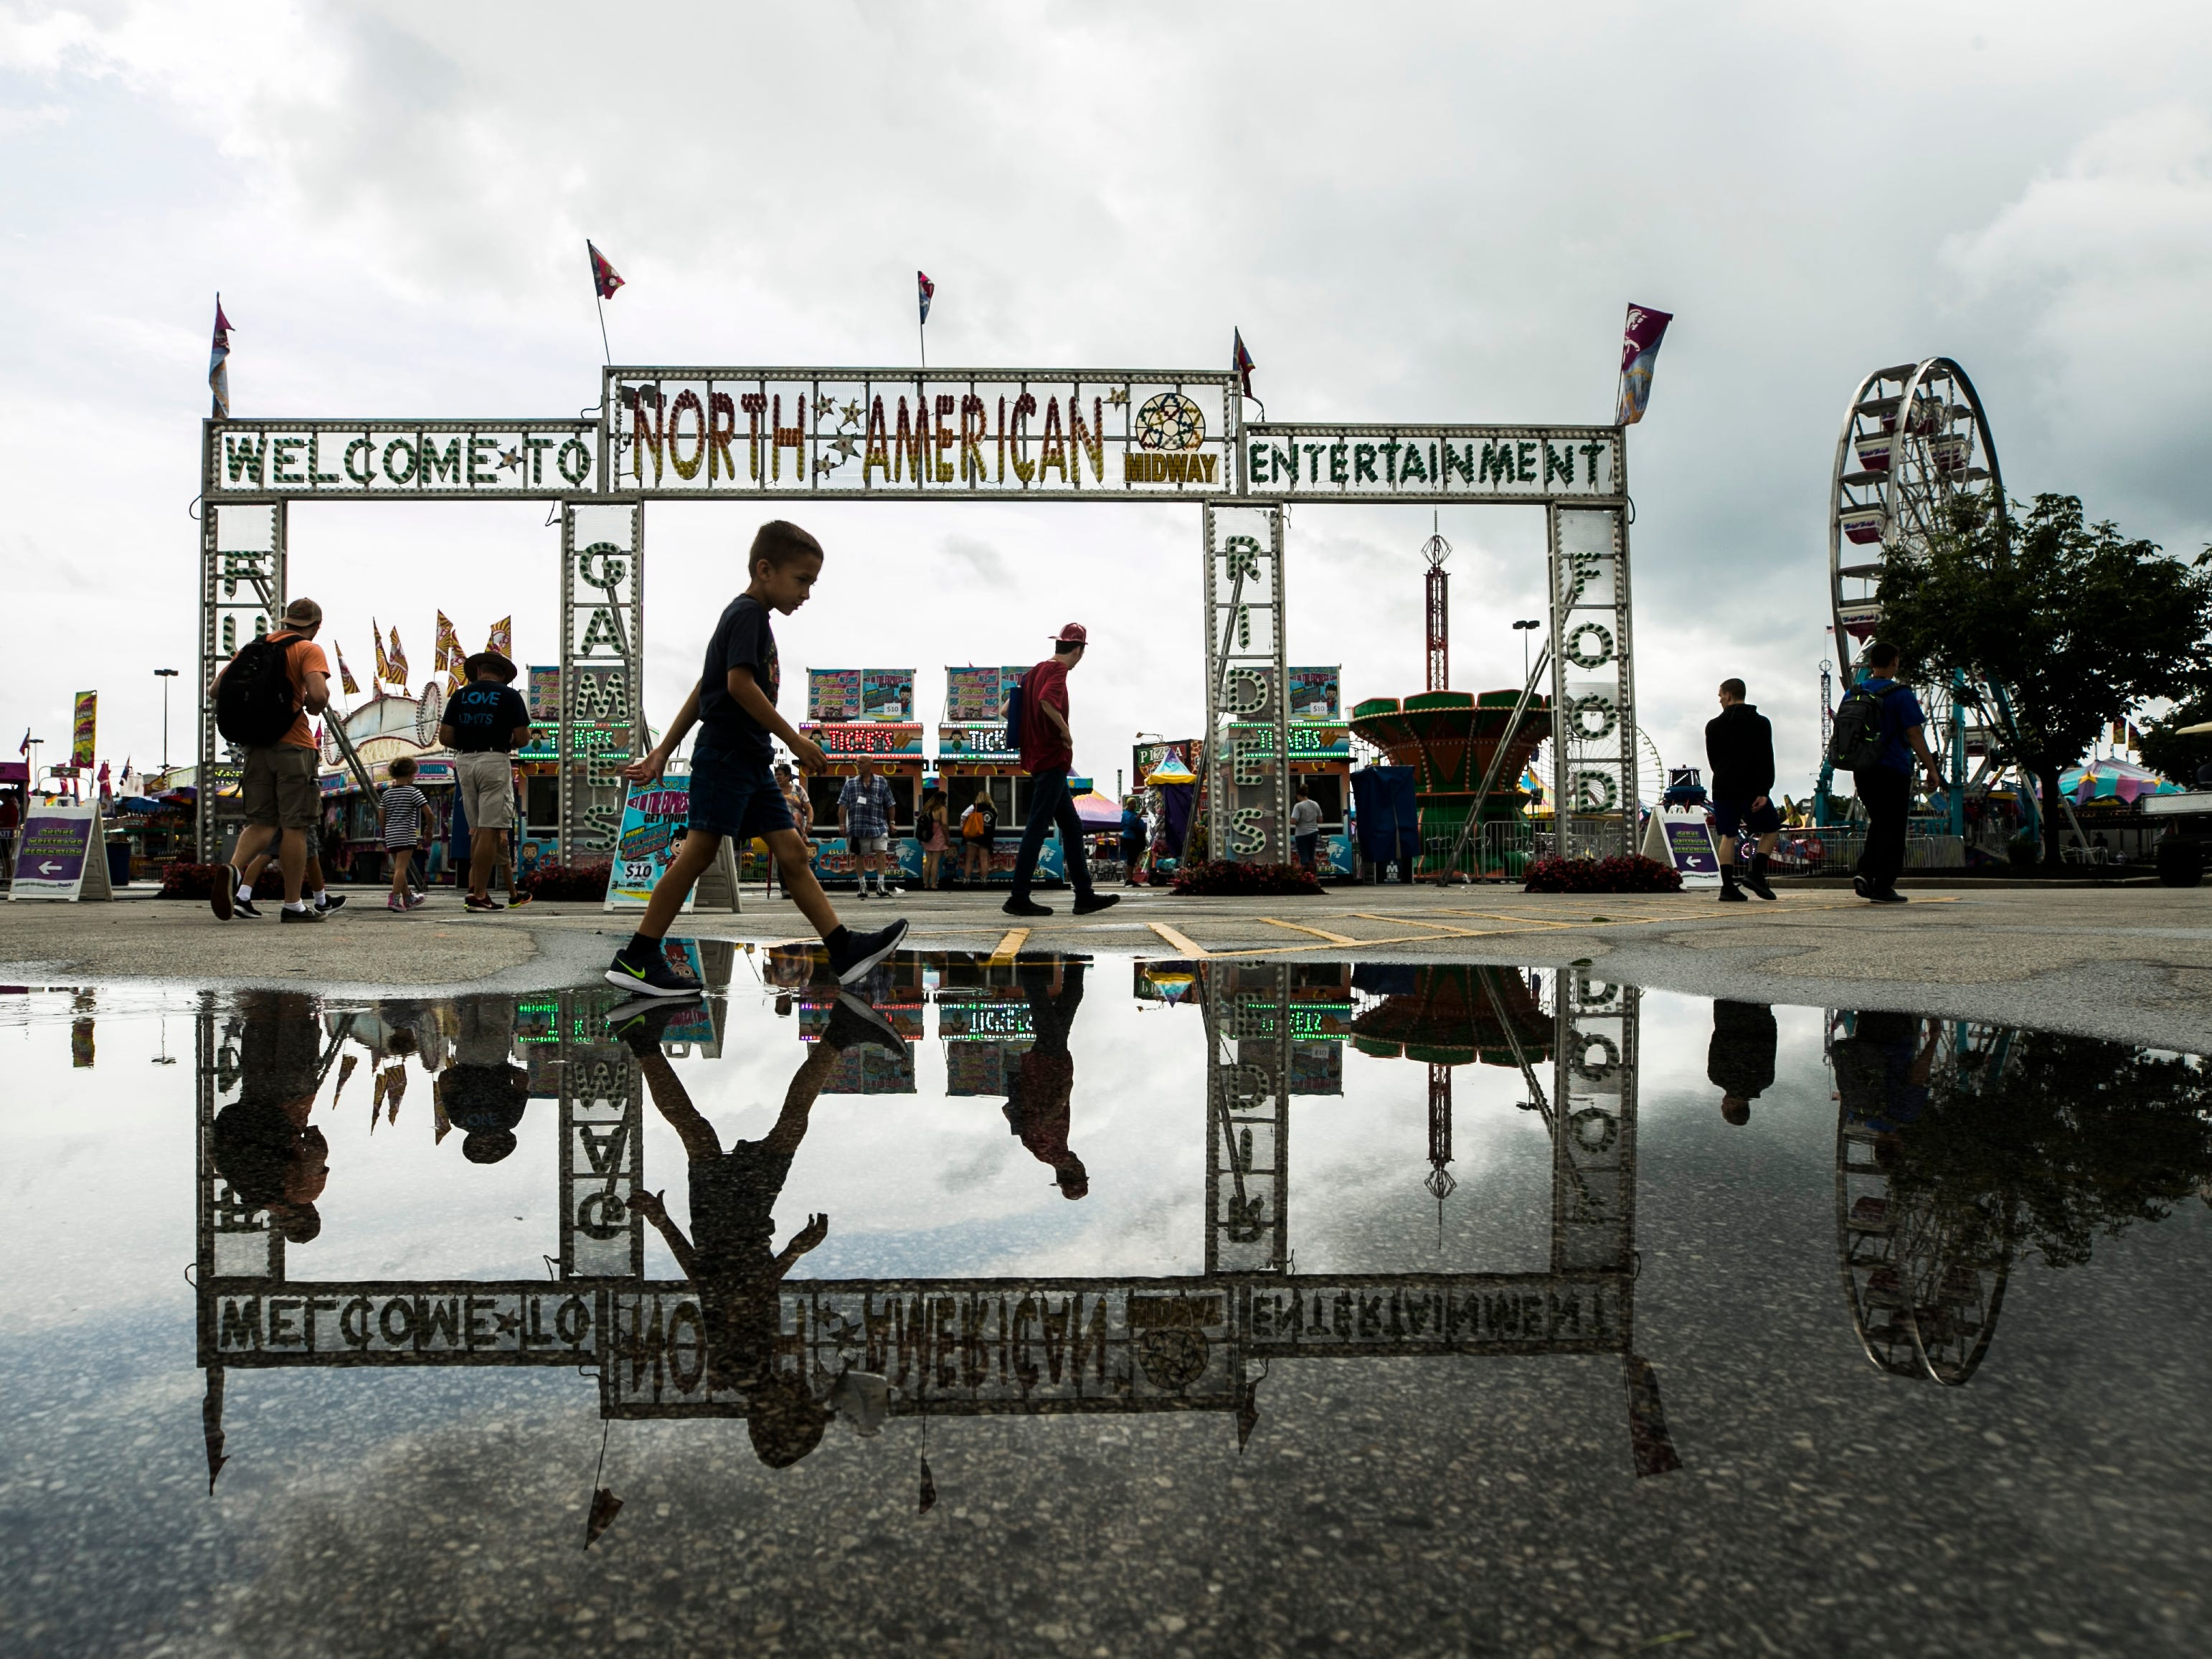 It was a rainy morning on the opening day of the 2018 Kentucky State Fair but by early afternoon, the rain stopped and the sun peaked out on the midway, with puddles helping cast a mirror image.